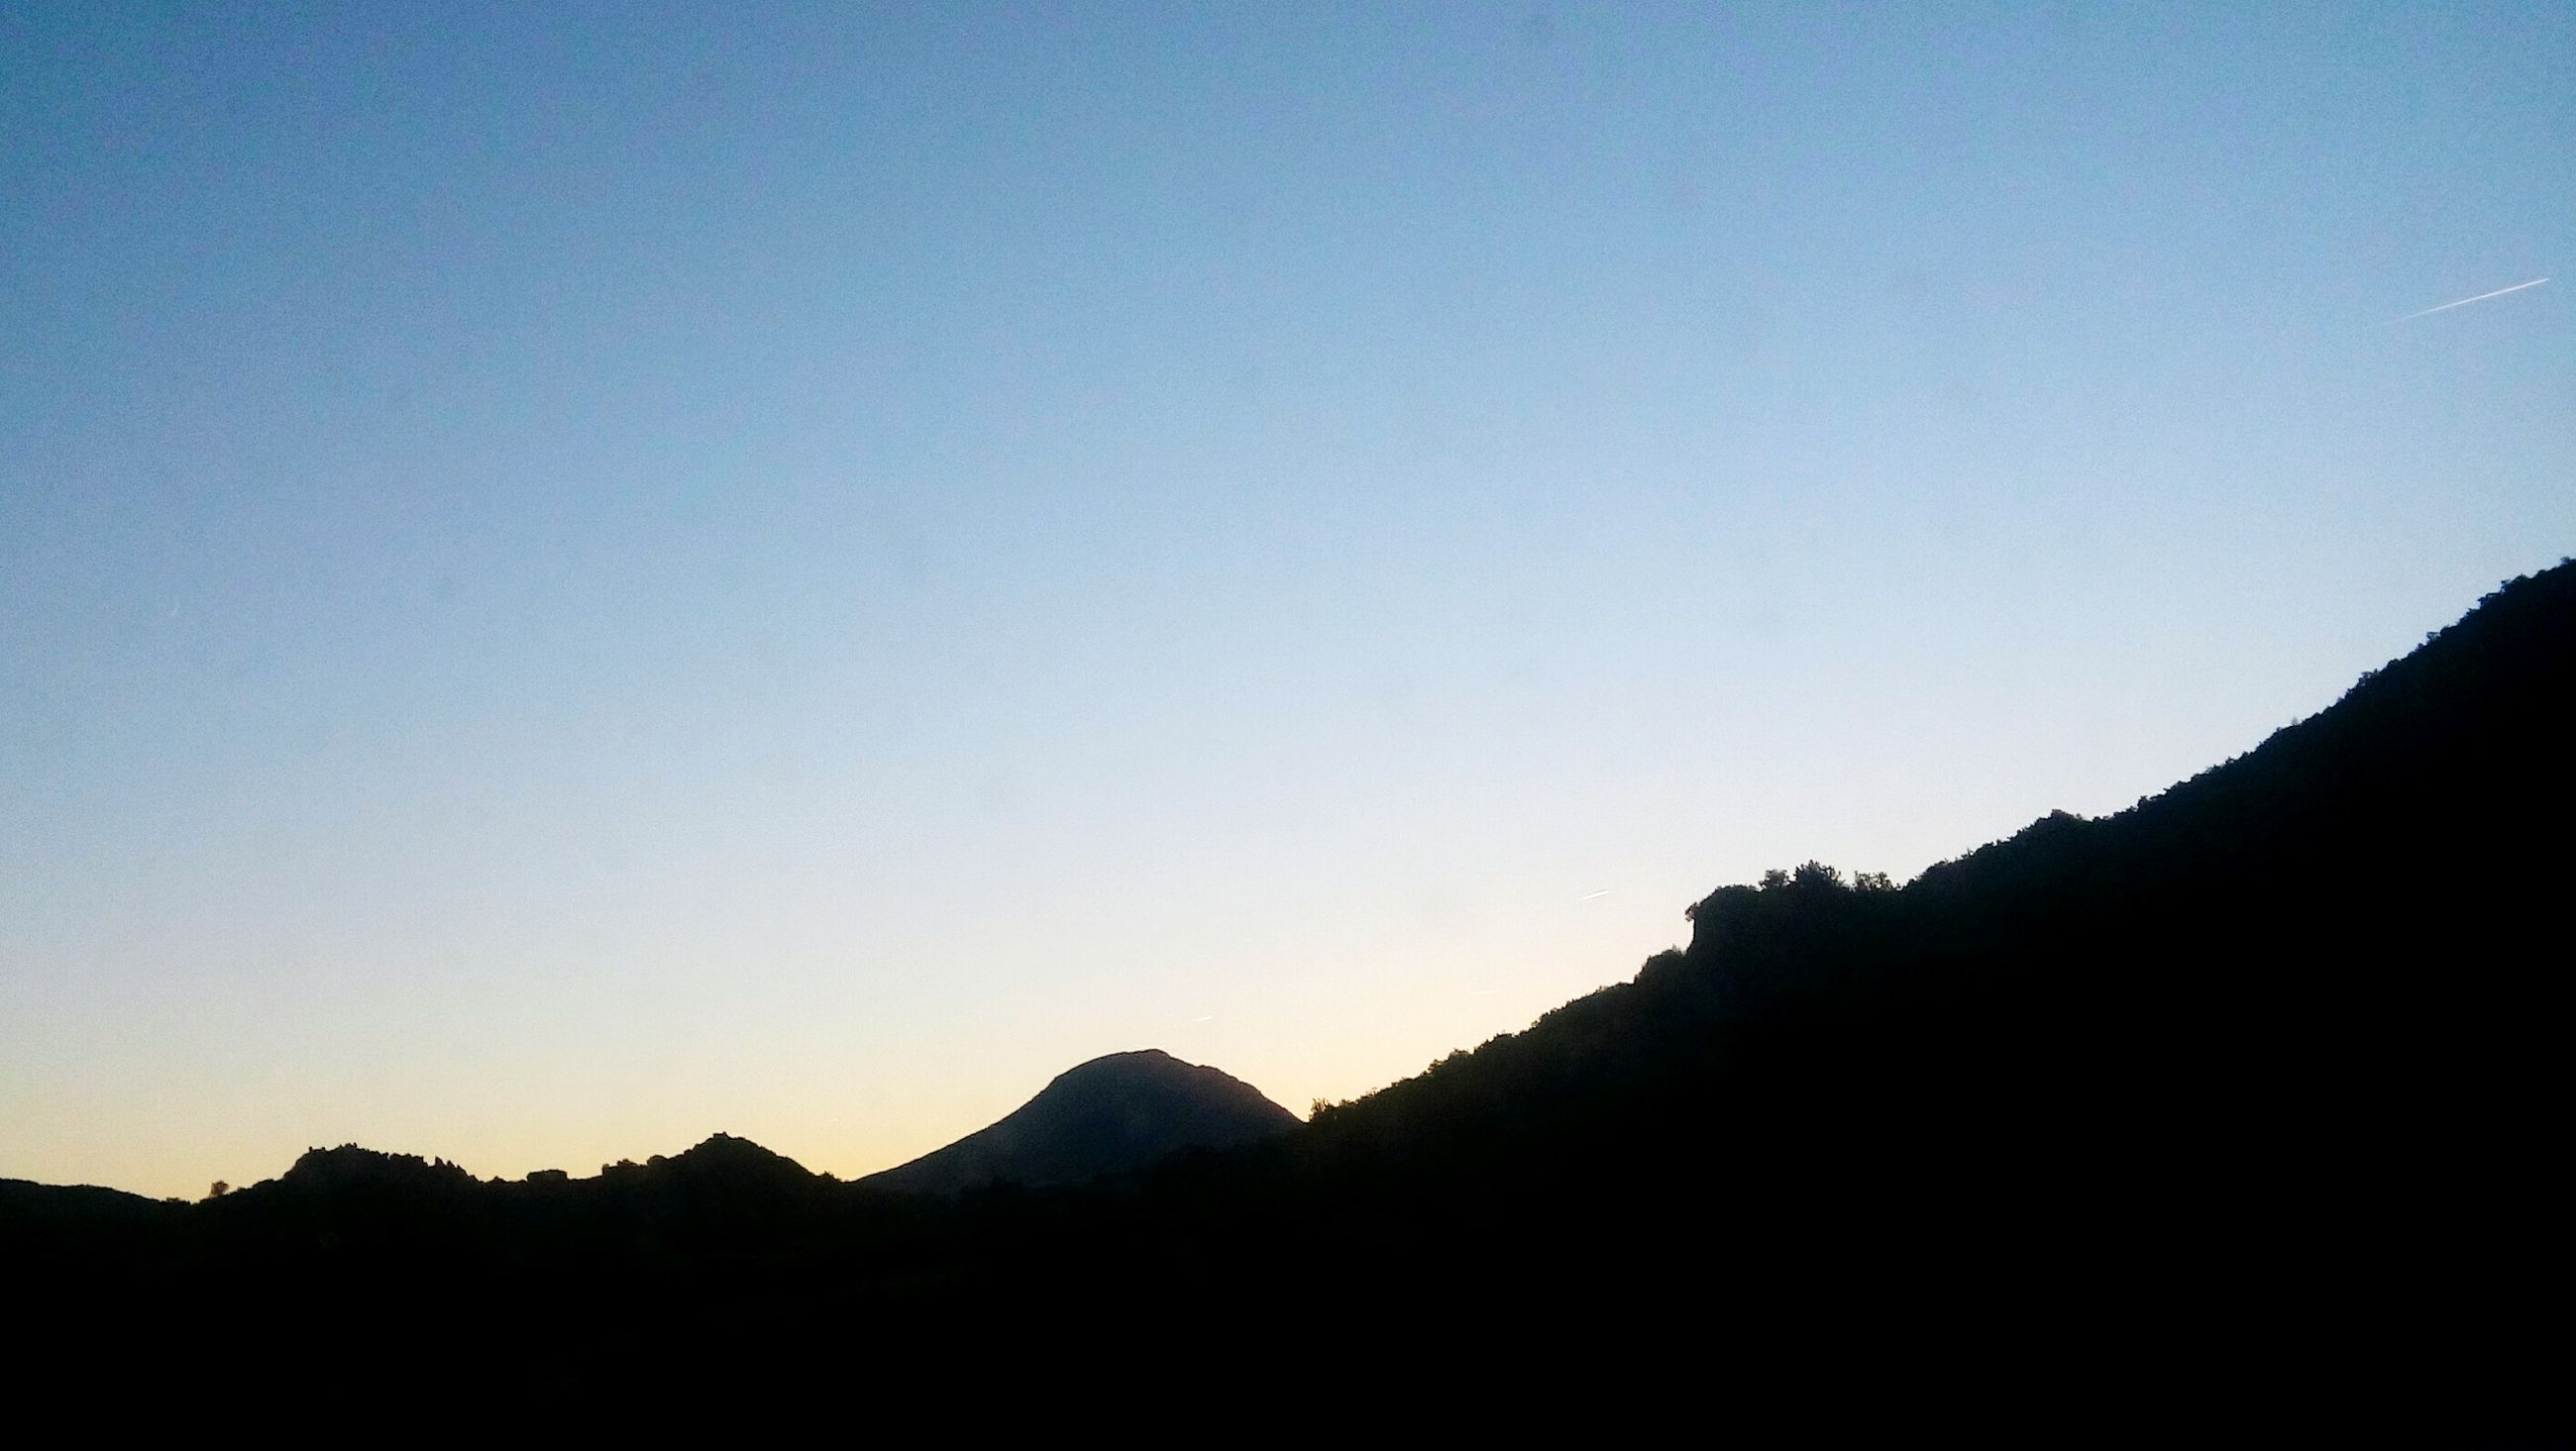 mountain, silhouette, clear sky, tranquil scene, copy space, tranquility, scenics, beauty in nature, mountain range, nature, blue, non-urban scene, mountain peak, dark, outdoors, remote, no people, day, majestic, valley, physical geography, dawn, cliff, outline, wilderness area, geology, wilderness, solitude